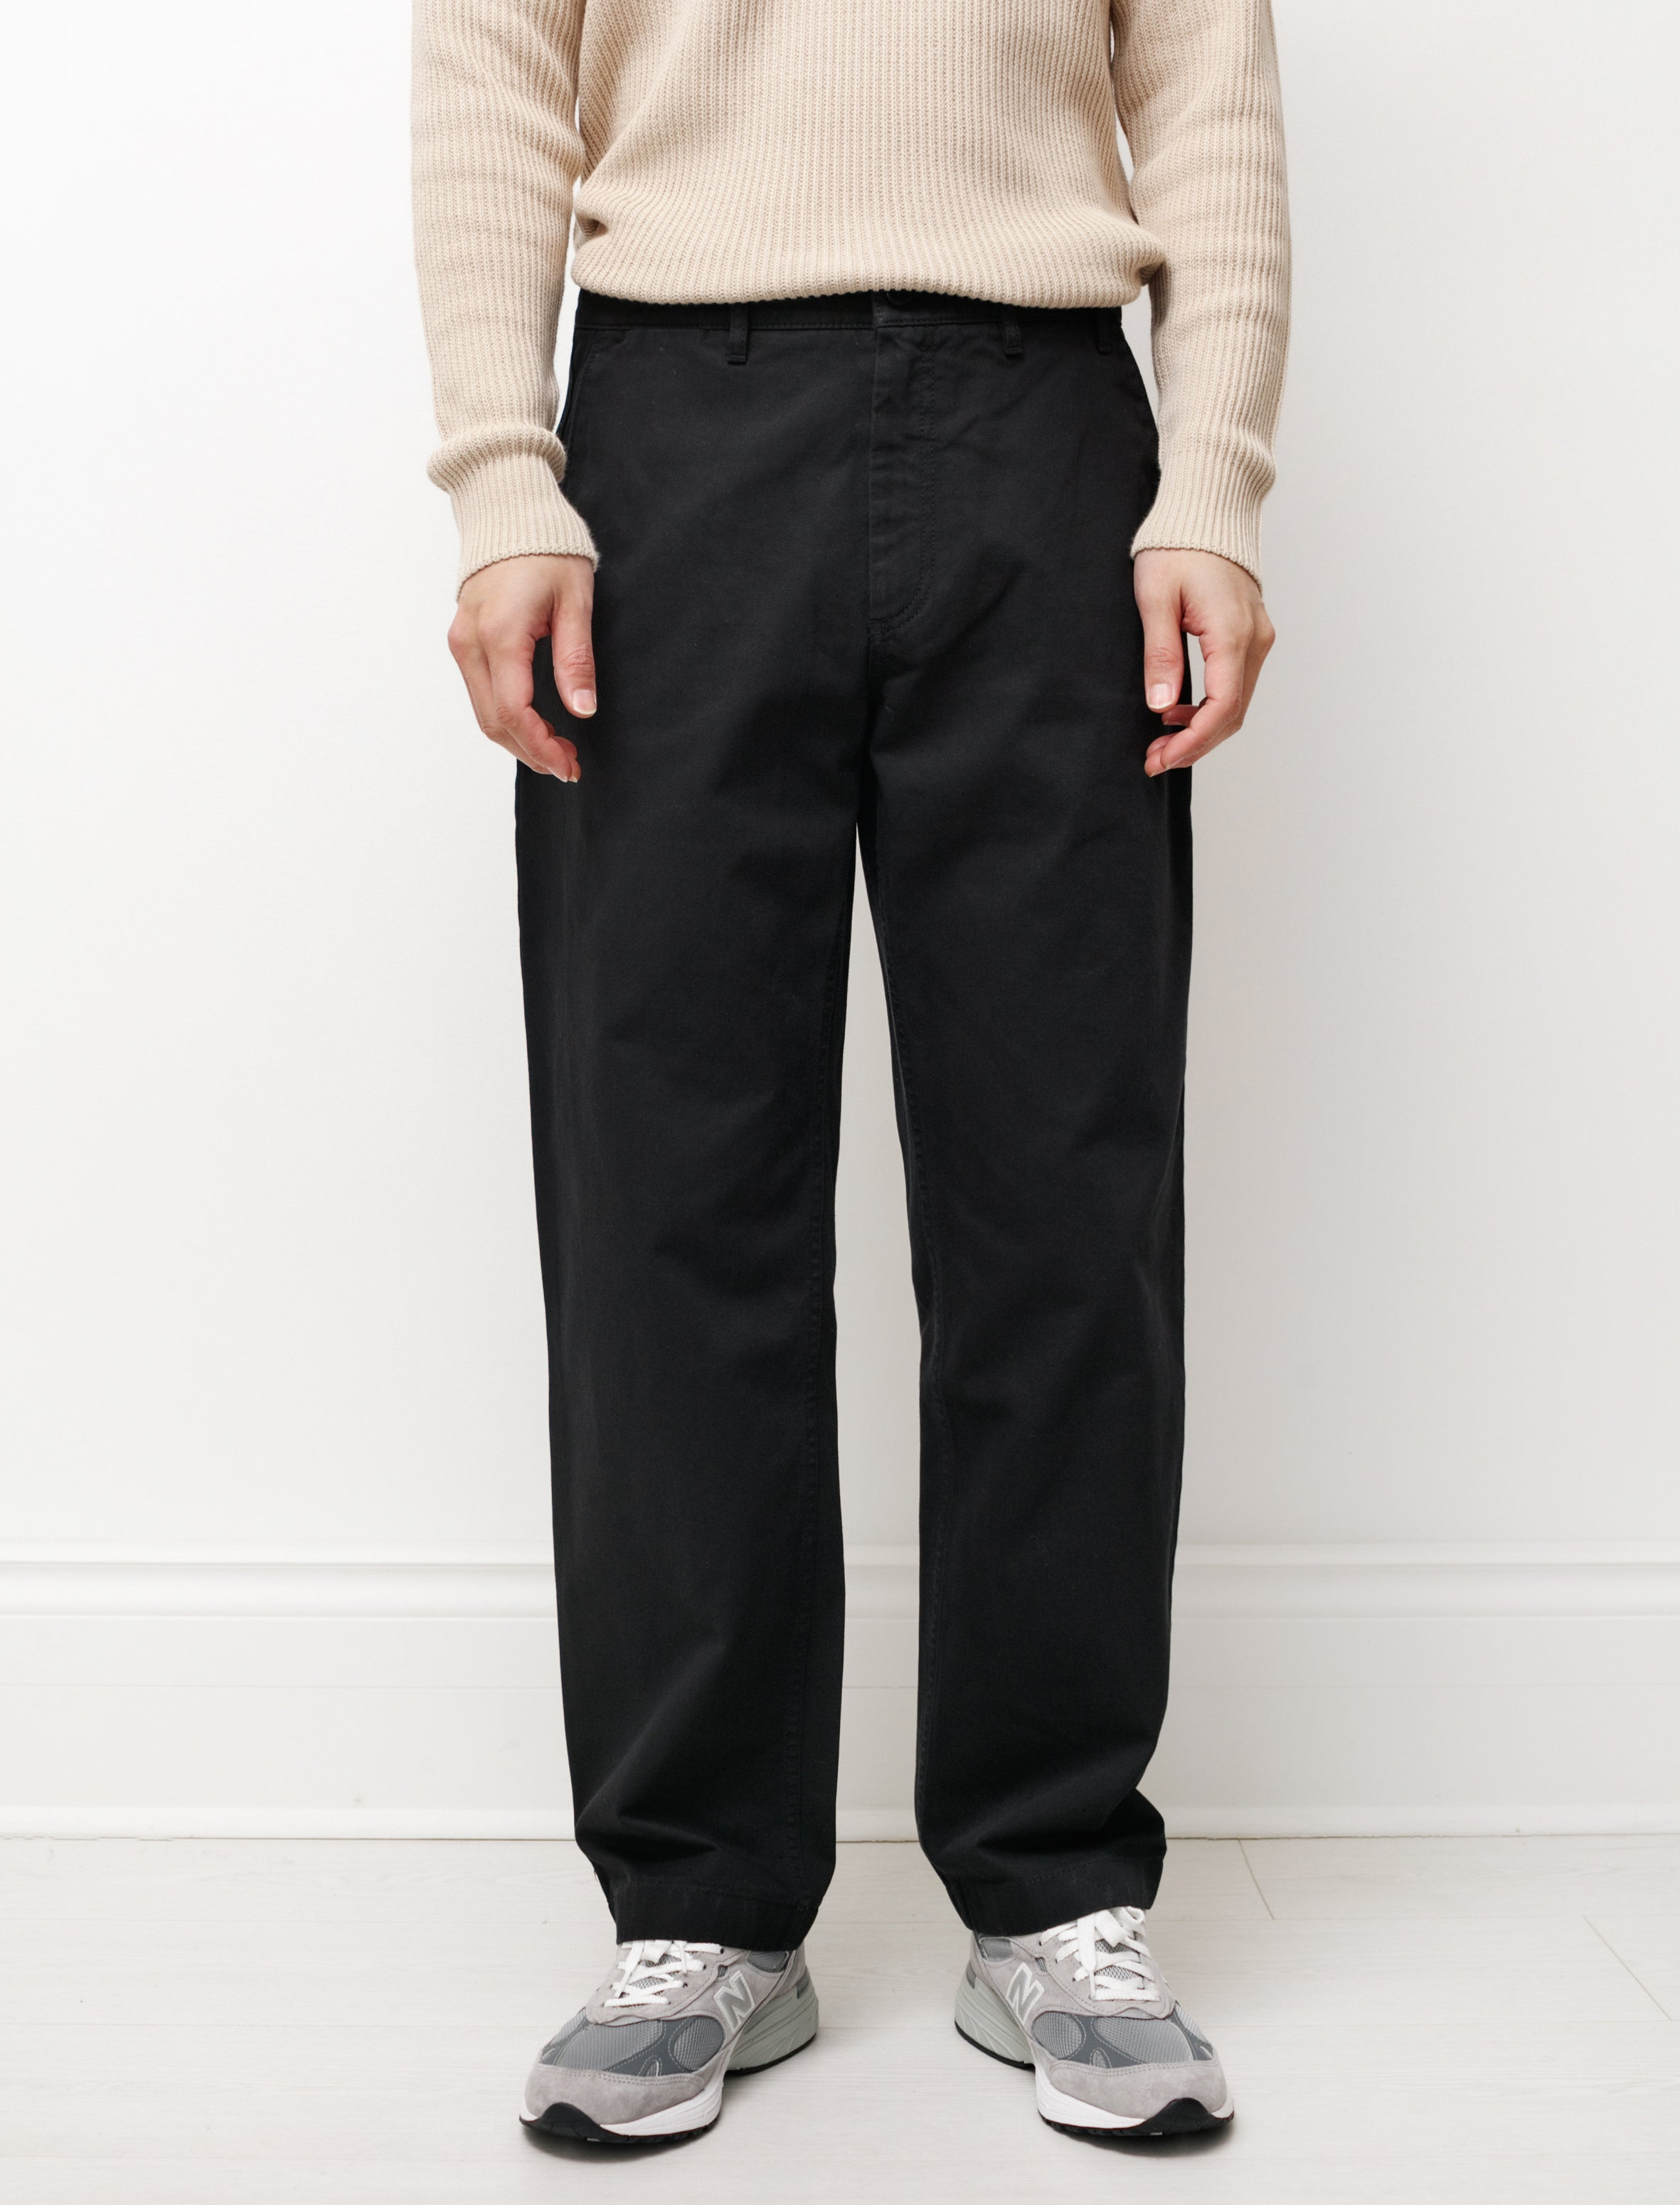 Camiel Fortgens Worker Pants Denim